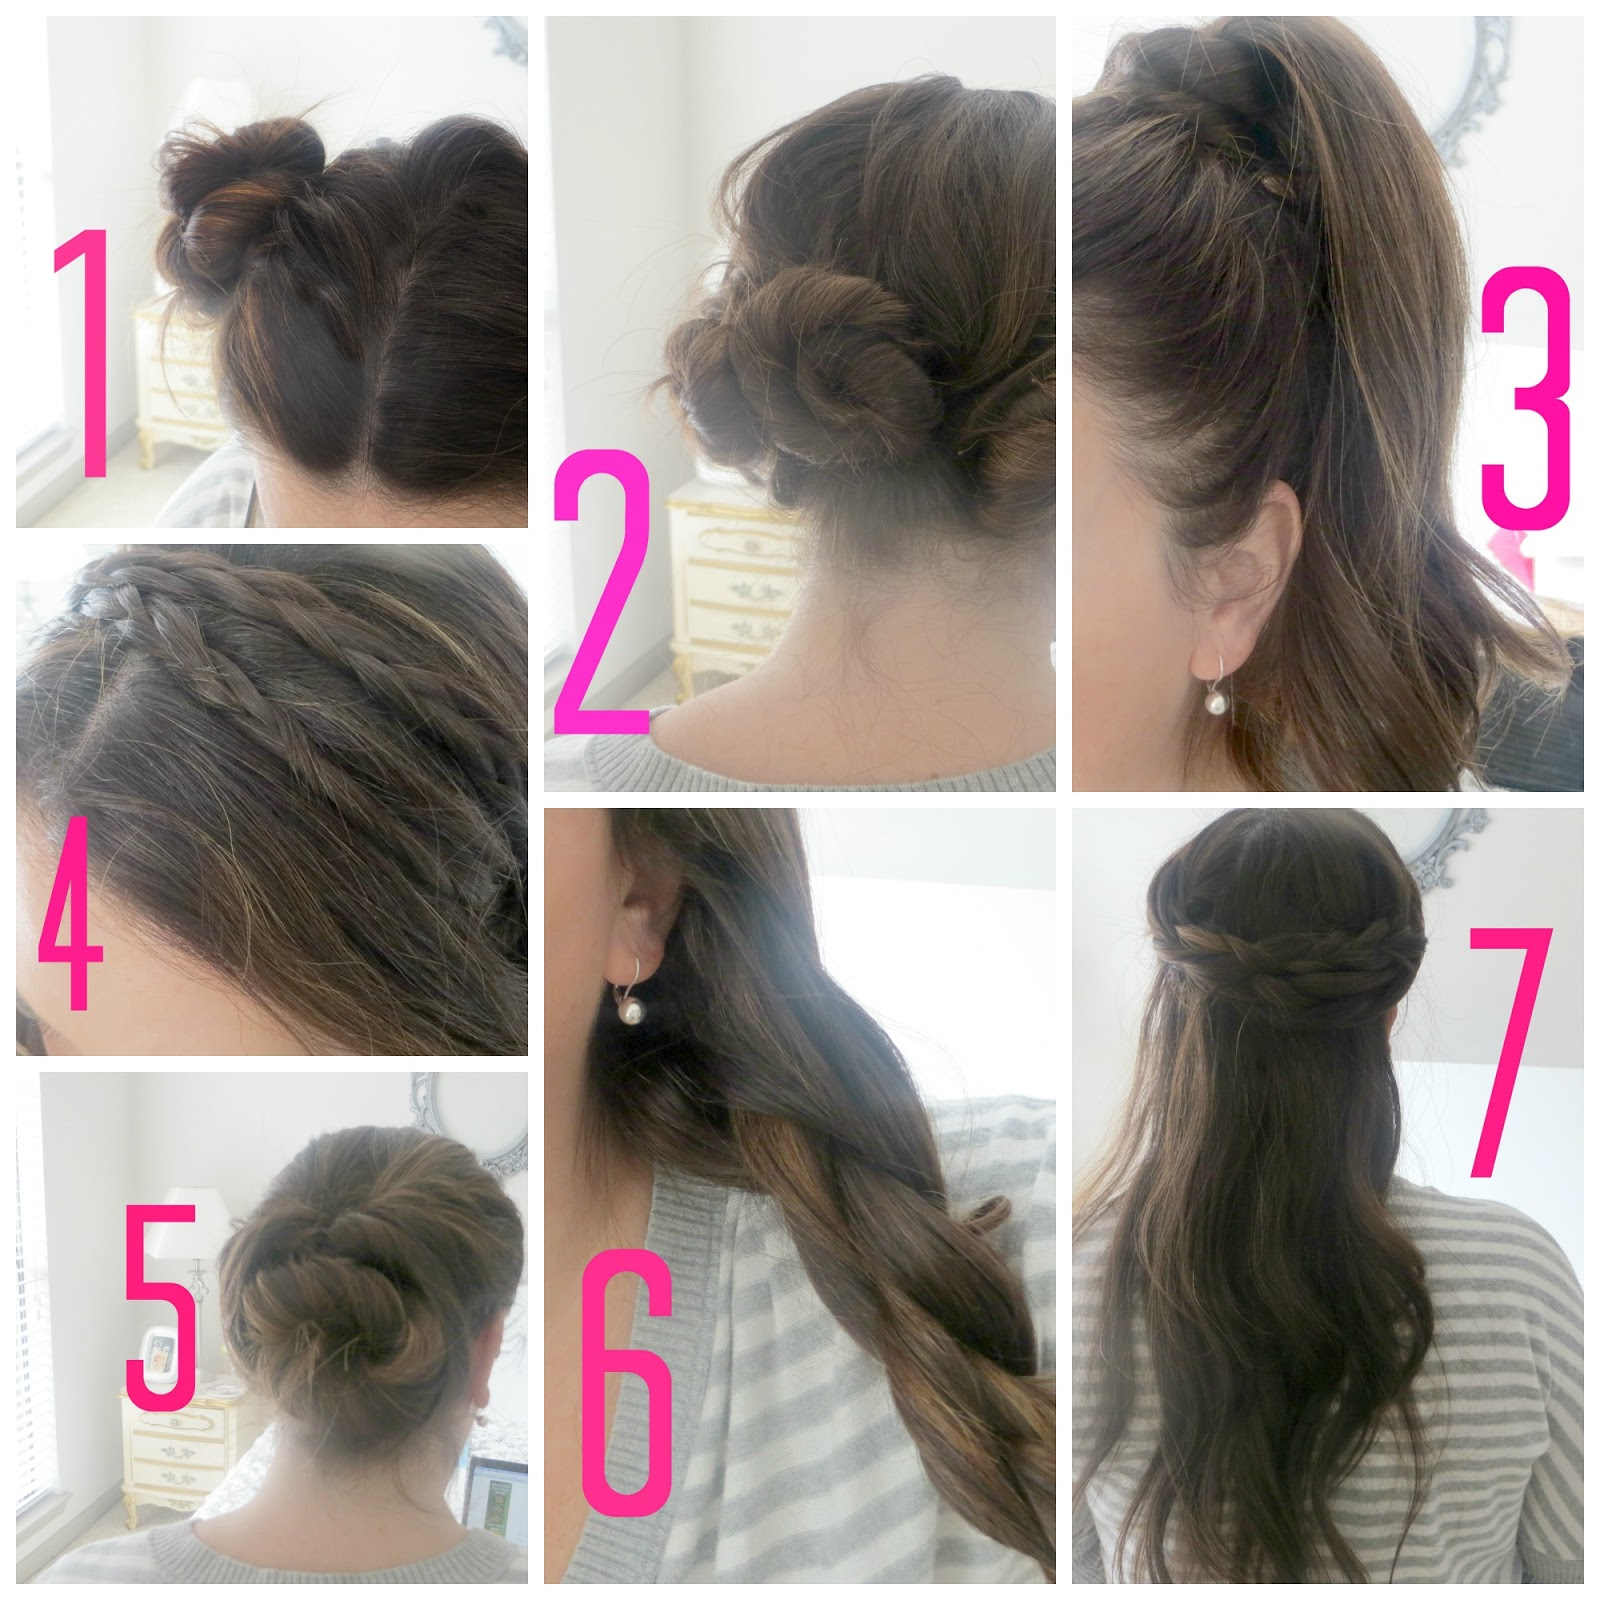 30 Hairstyles For School